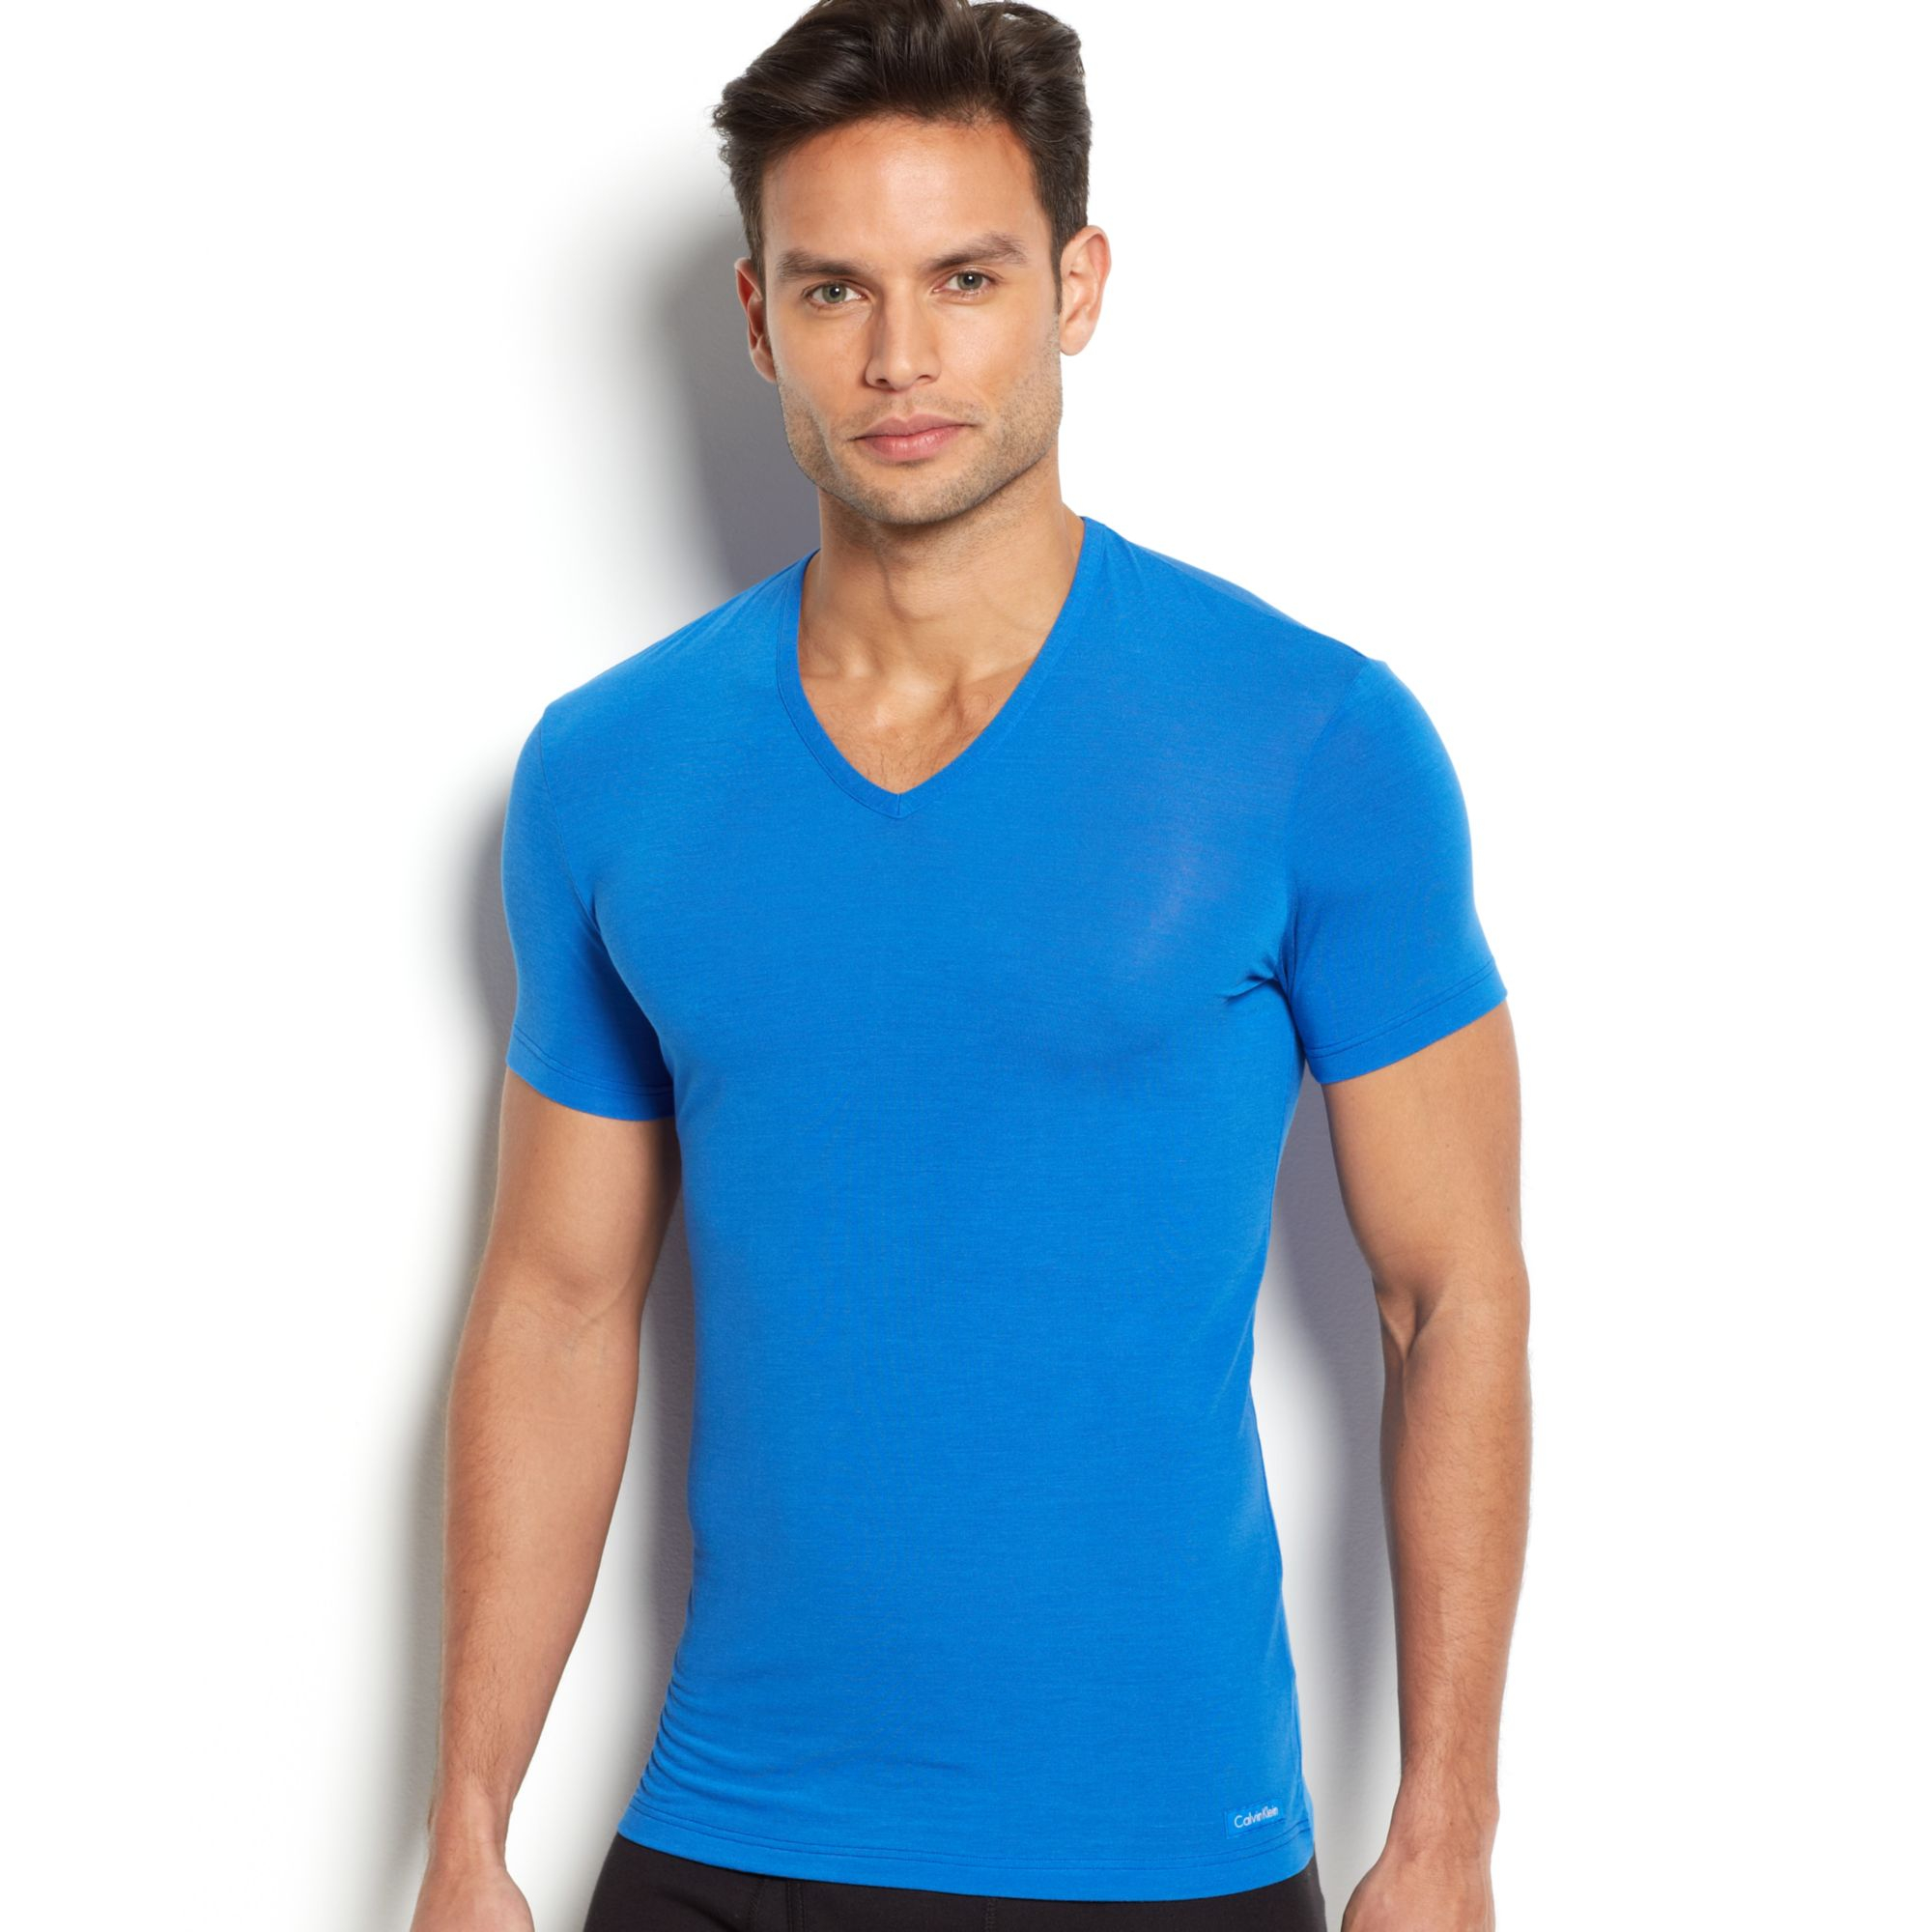 The Idle Man – T-shirt £10 Cole Haan – Trainers What to Wear Under a V-Neck Sweater. A V-neck jumper is a versatile piece that's easy to mix and match with a range of outfits. Team your men's jumper with with a simple crew neck T .